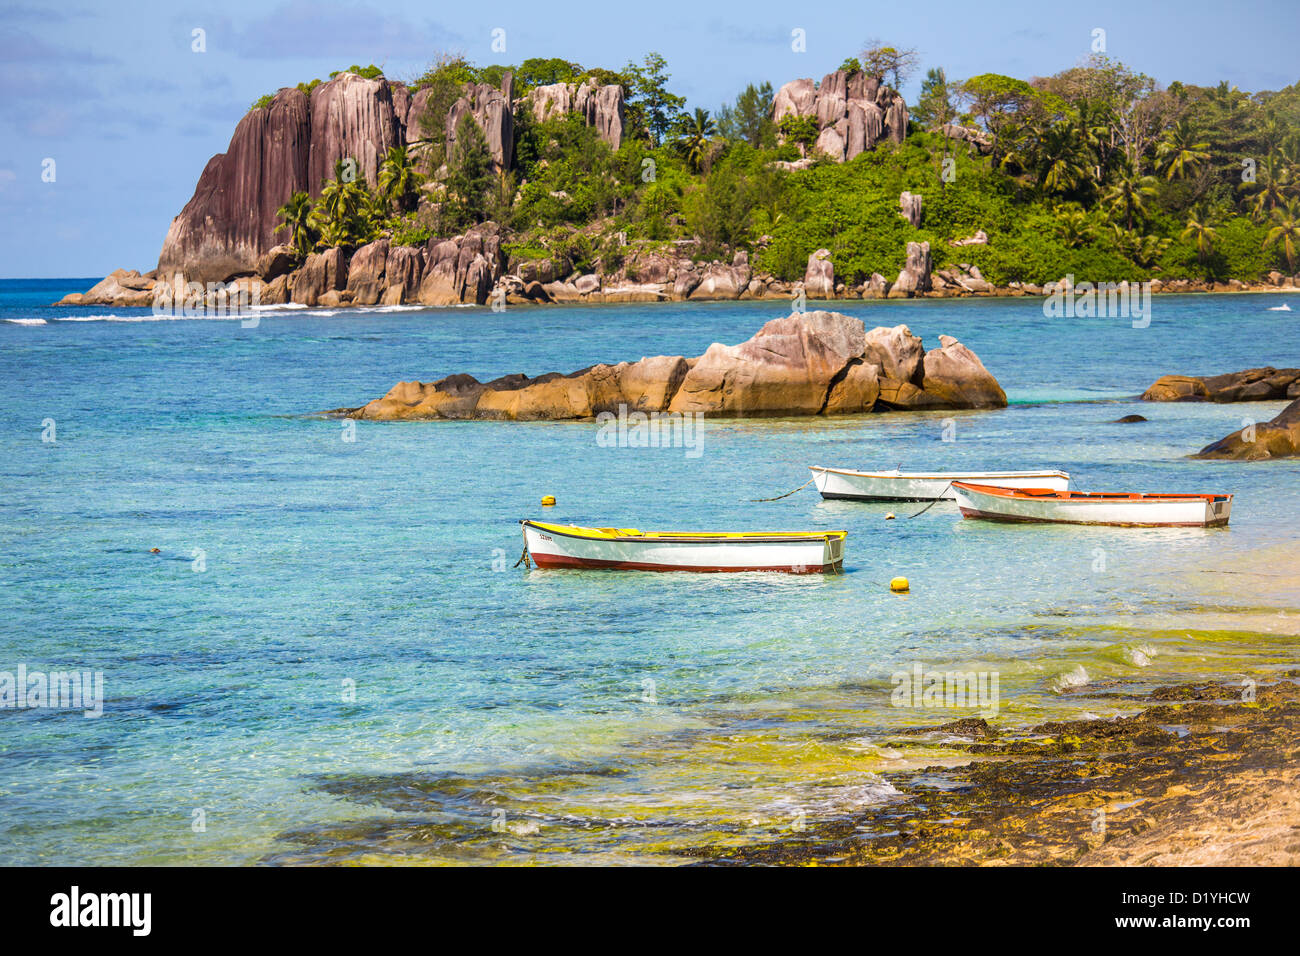 Beach on Mahe Island, Seychelles - Stock Image